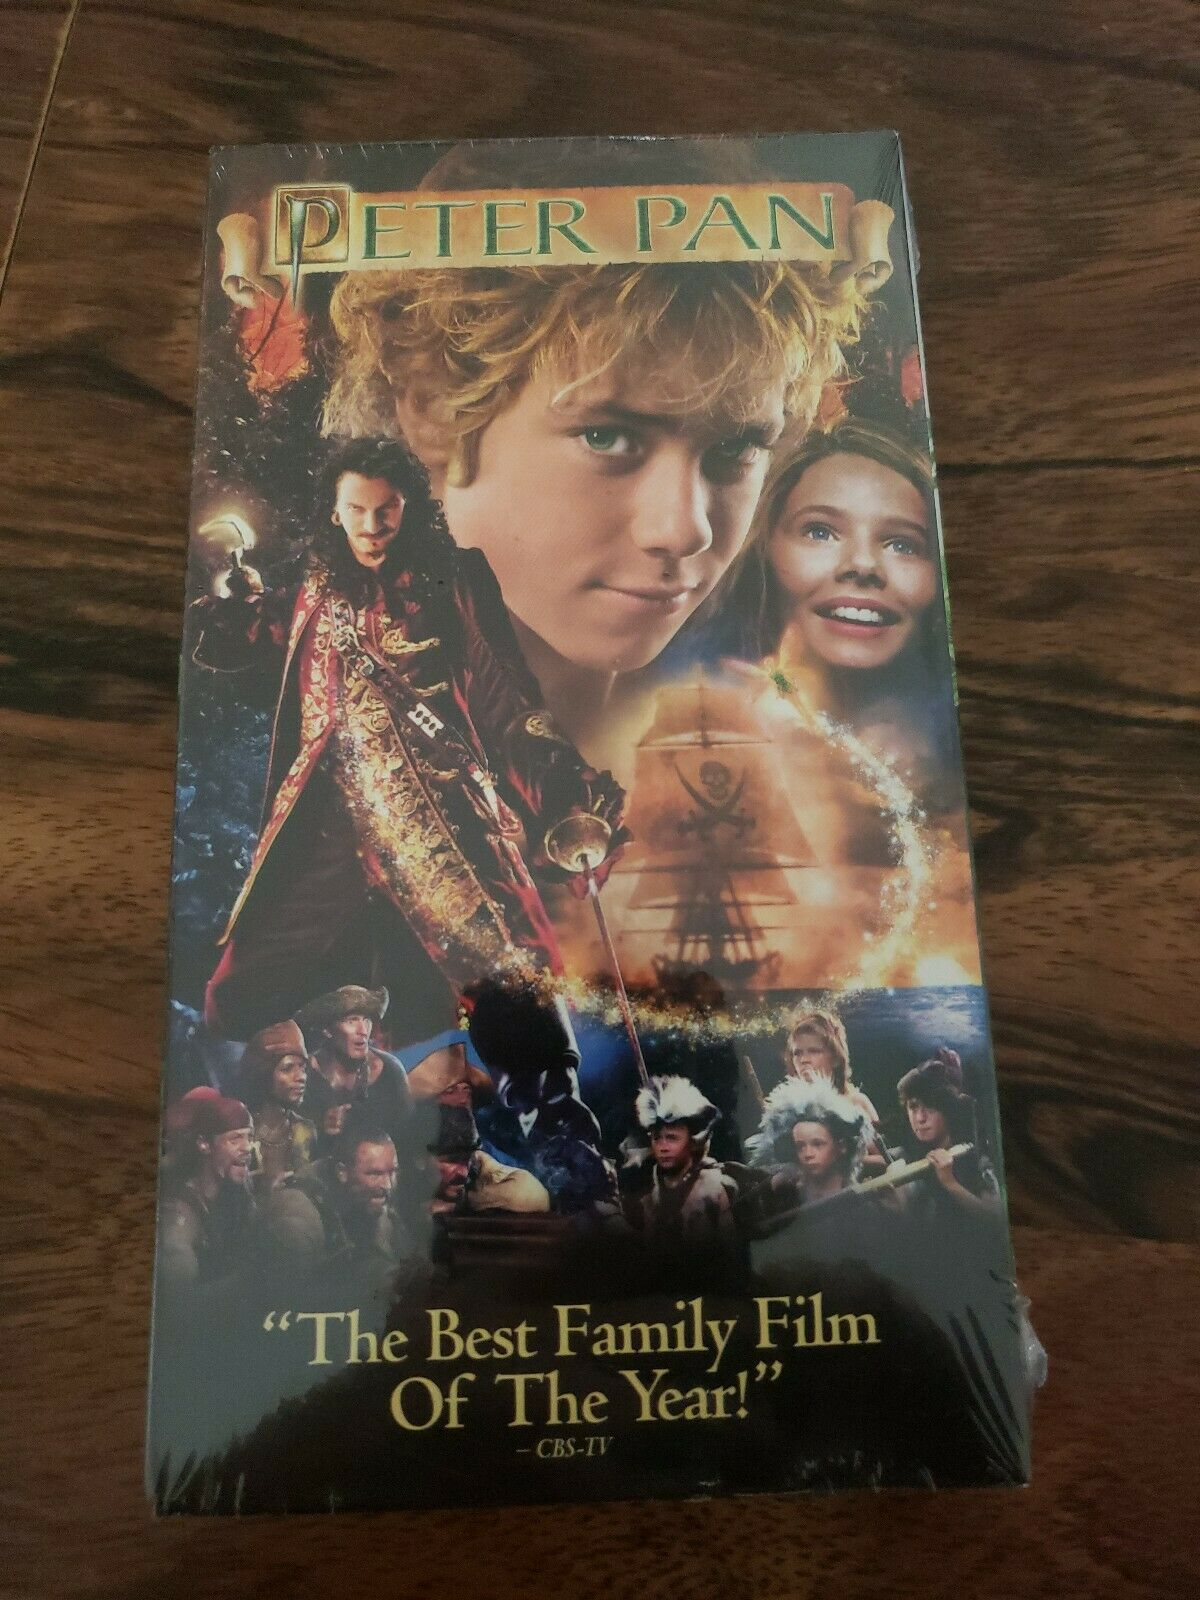 Peter Pan (Live Action) (2004 VHS)